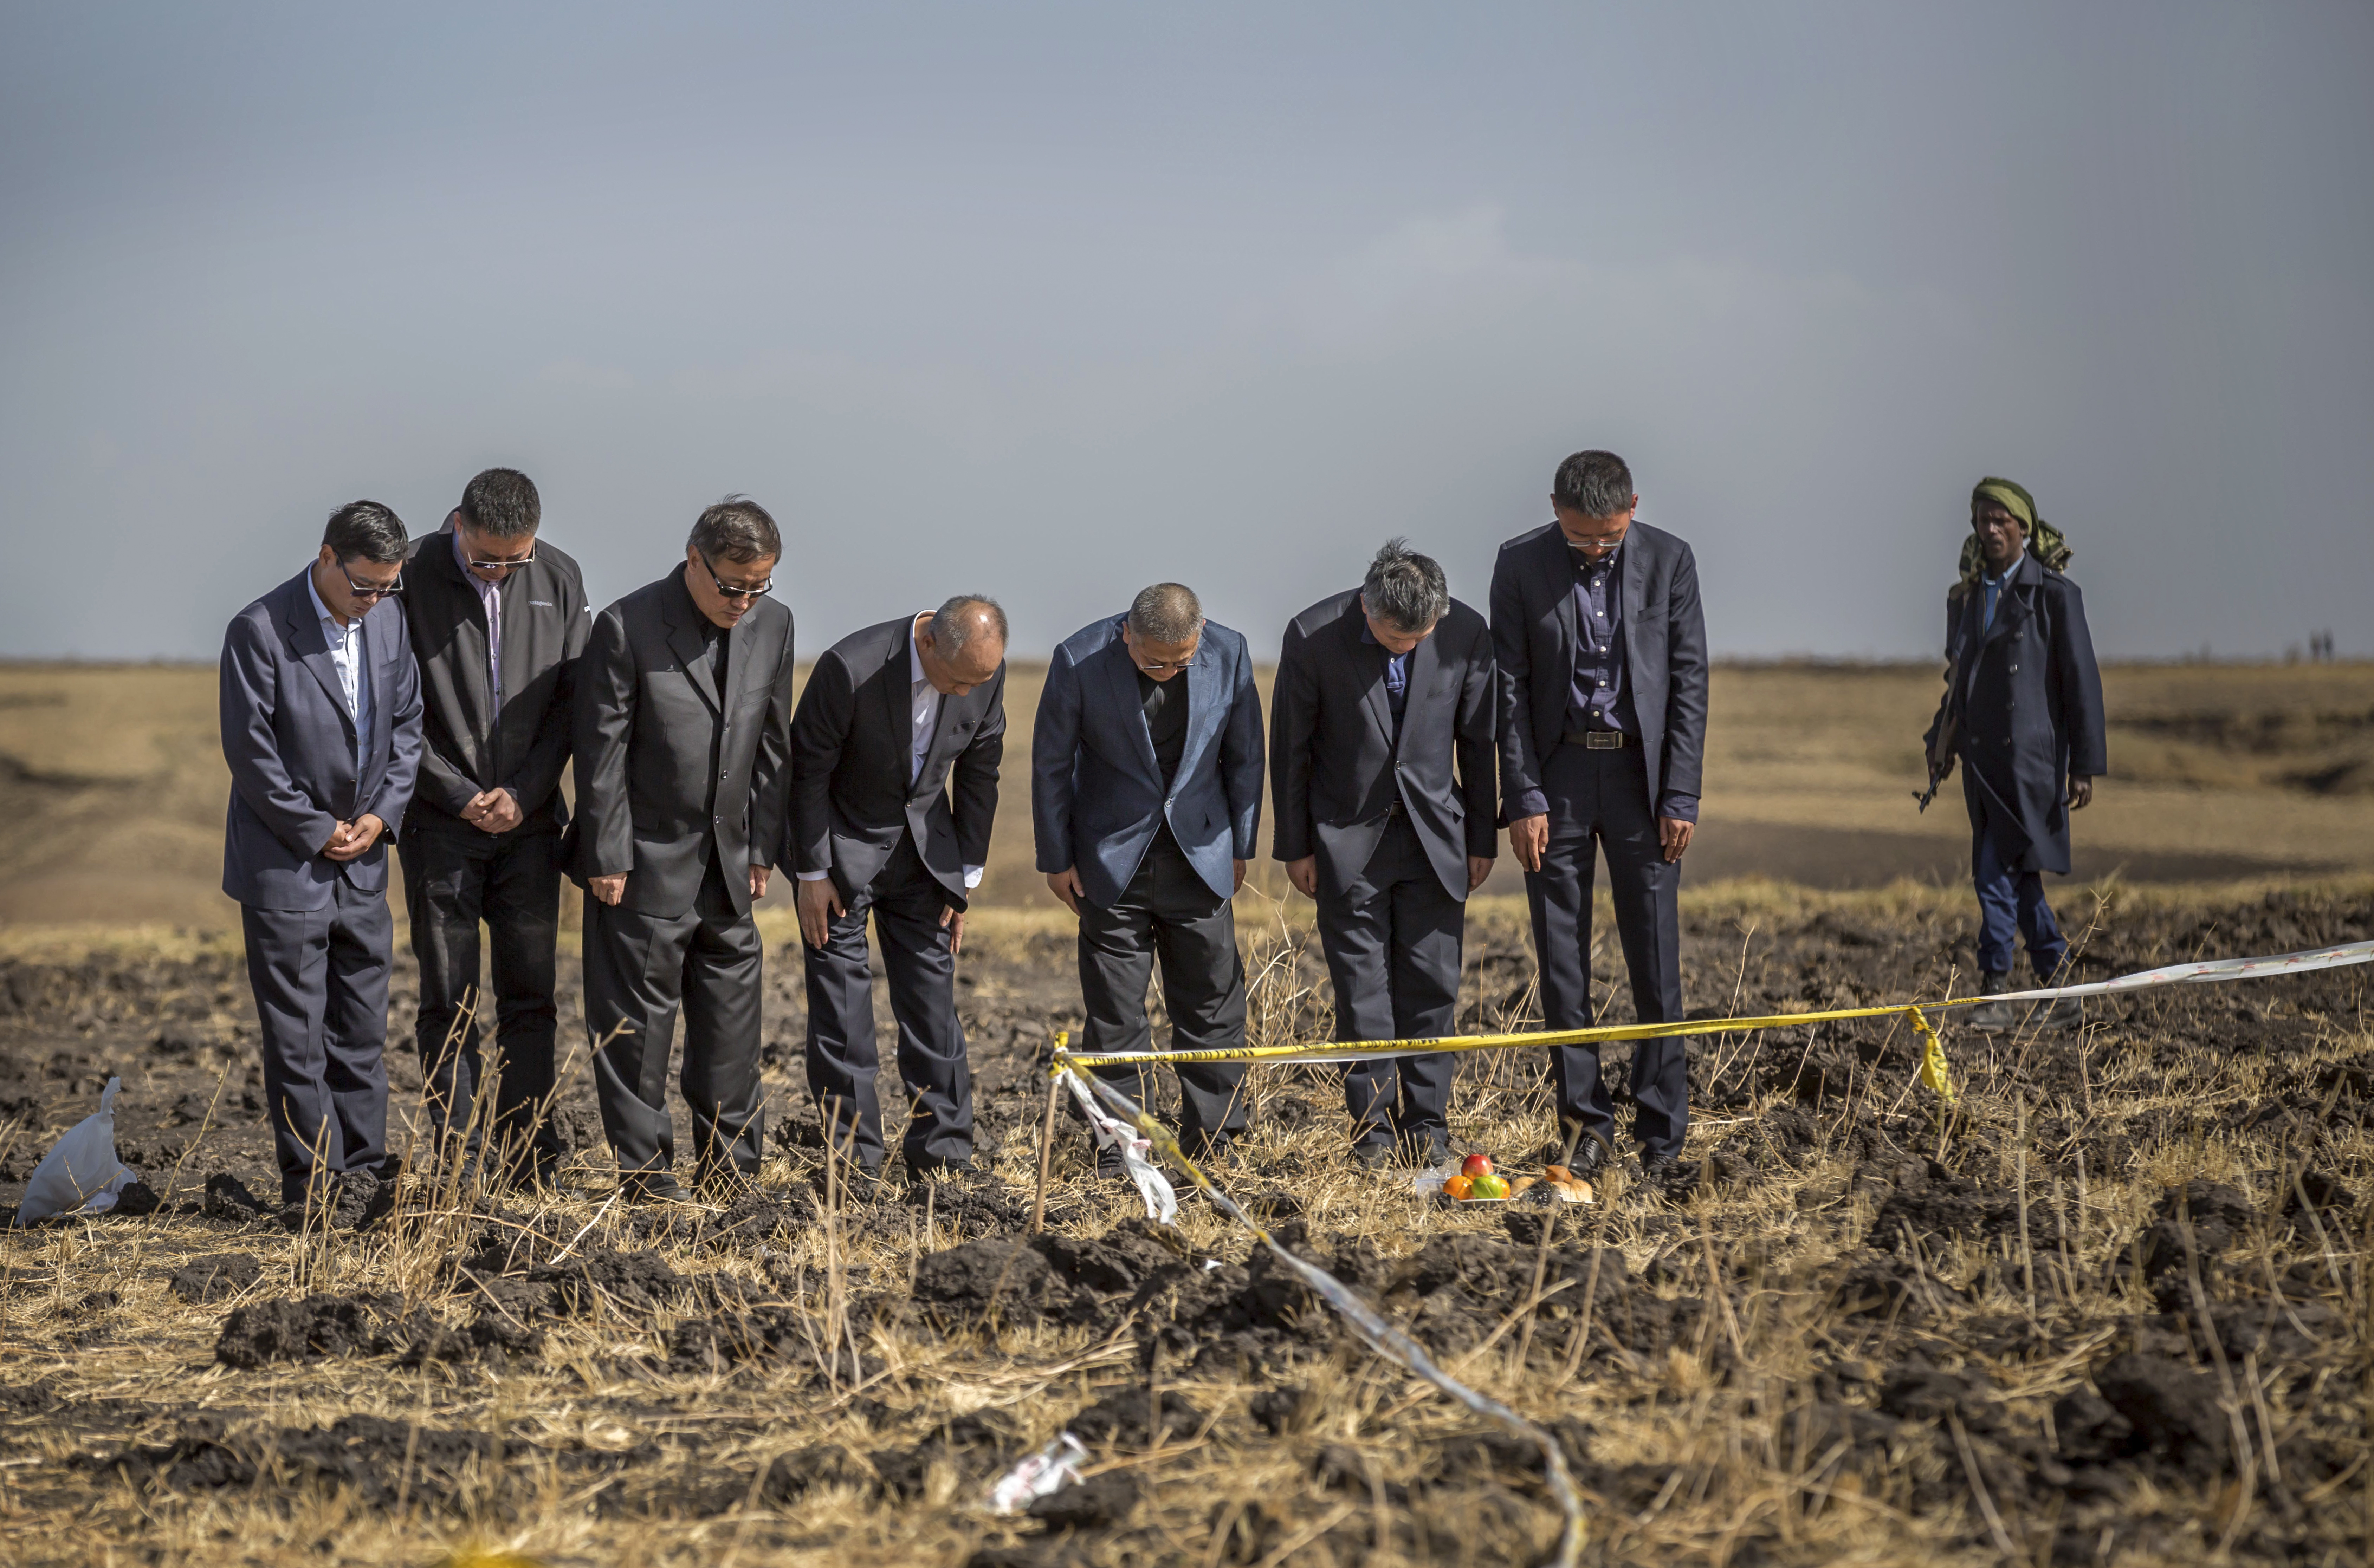 Officials from the Aviation Industry Corporation of China (AVIC) pray next to an offering of fruit, bread rolls, and a plastic container of Ethiopian Injera, a fermented sourdough flatbread, placed next to incense sticks, at the scene where the Ethiopian Airlines Boeing 737 Max 8 crashed shortly after takeoff on Sunday killing all 157 on board, near Bishoftu, or Debre Zeit, south of Addis Ababa, in Ethiopia Tuesday, March 12, 2019. Ethiopian Airlines had issued no new updates on the crash as of late afternoon Tuesday as families around the world waited for answers, while a global team of investigators began picking through the rural crash site. (AP Photo/Mulugeta Ayene)